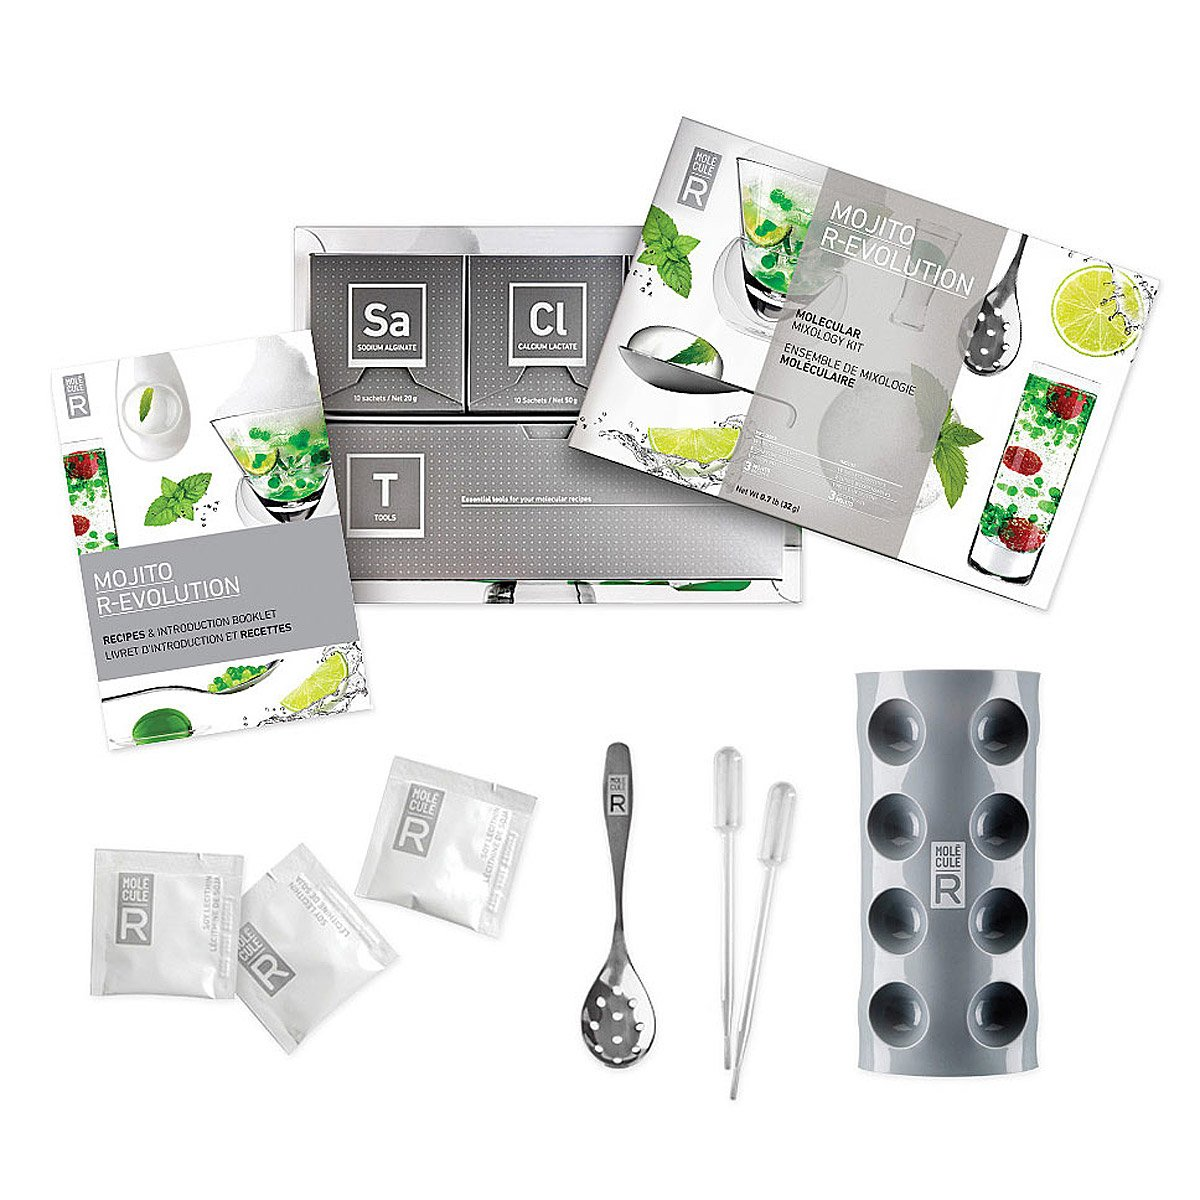 molecular mixology kit - mojito set | modernist cuisine